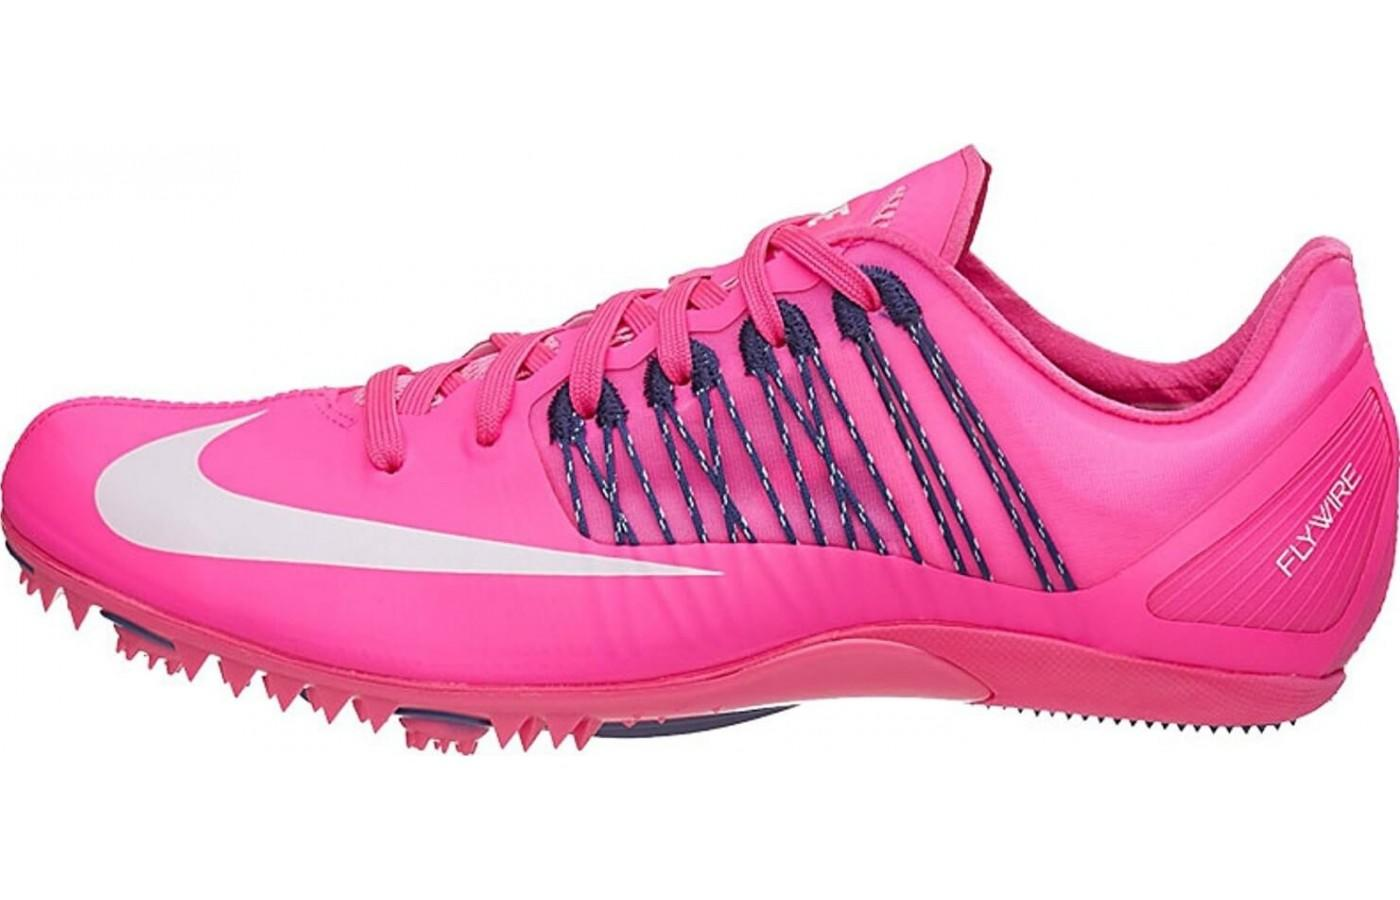 finest selection 745d3 a3883 ... The Nike Zoom Celar 5 comes in different colors for different  preferences